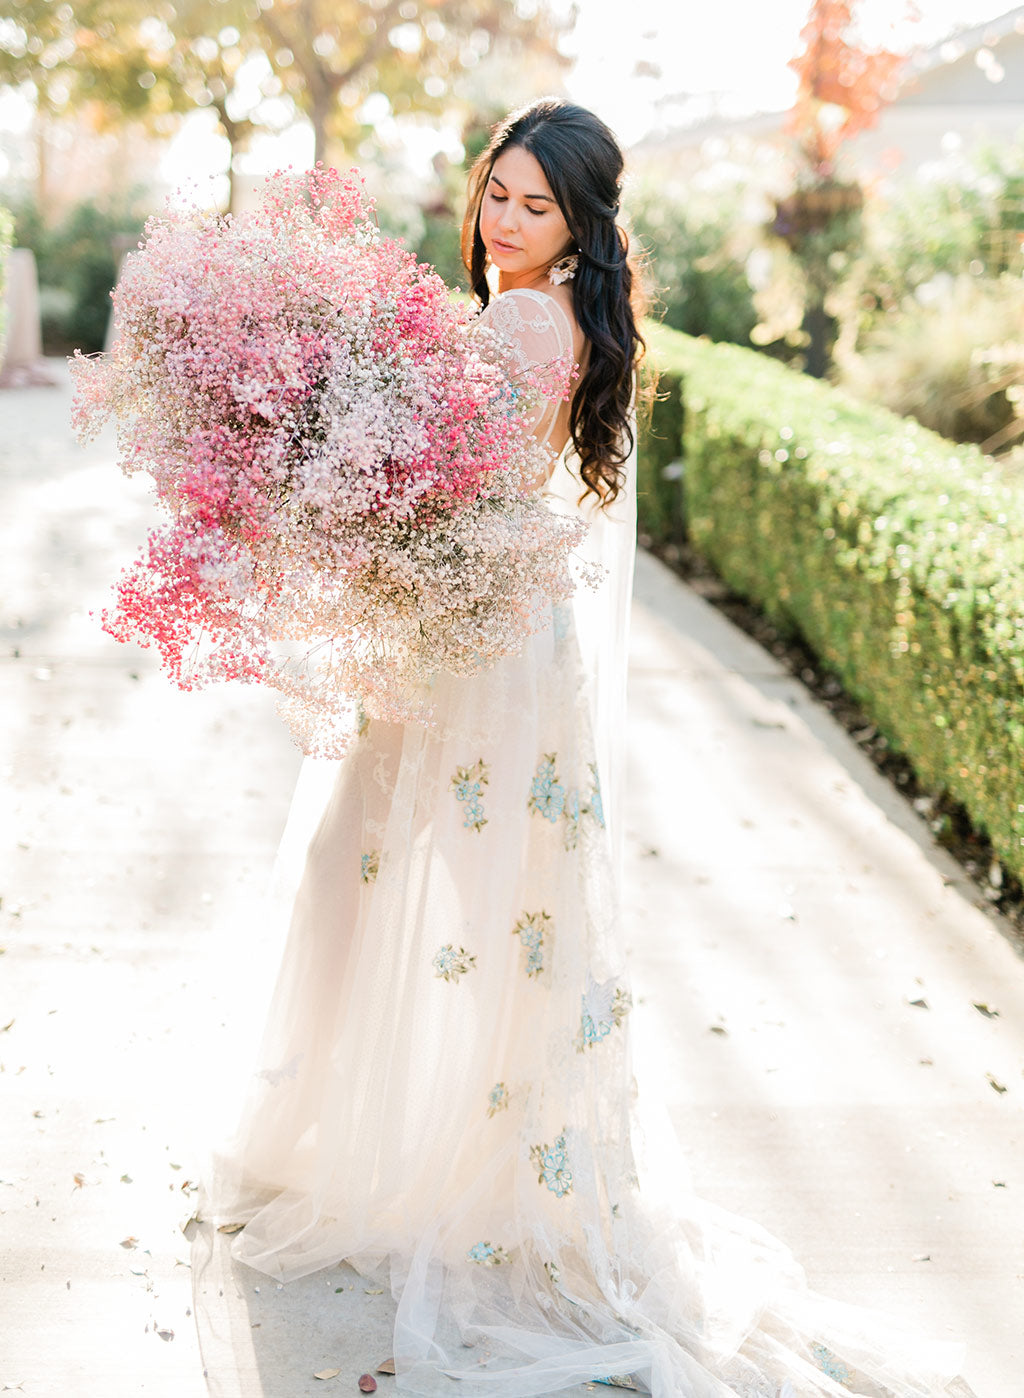 Bride Holding Wedding Floral Arrangement